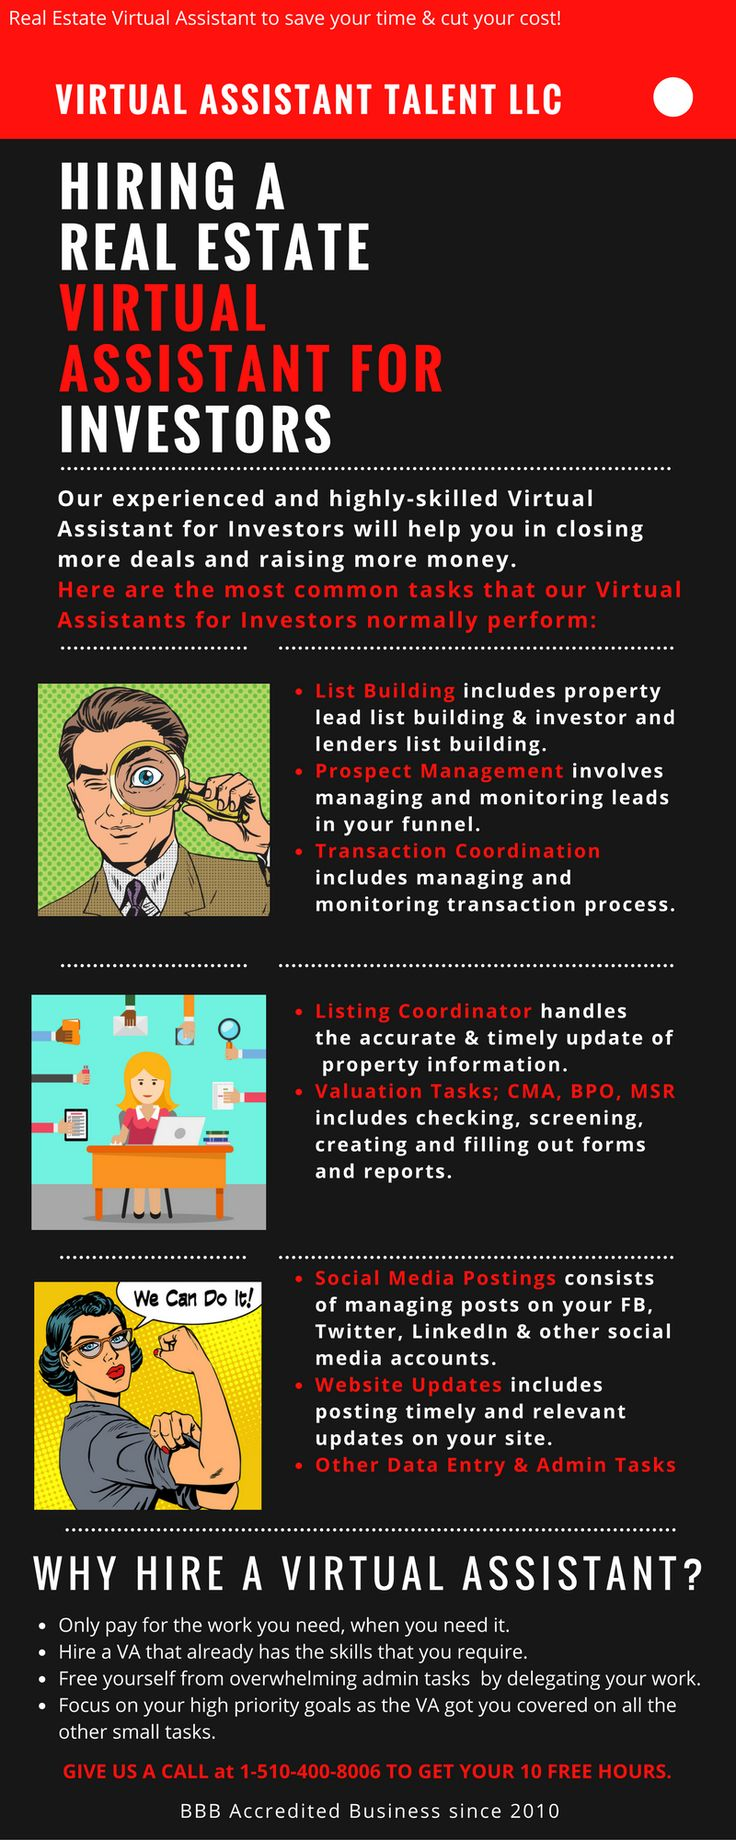 14 best real estate virtual assistant images on pinterest real real estate va for investors in a nutshell our real estate virtual assistant for fandeluxe Image collections